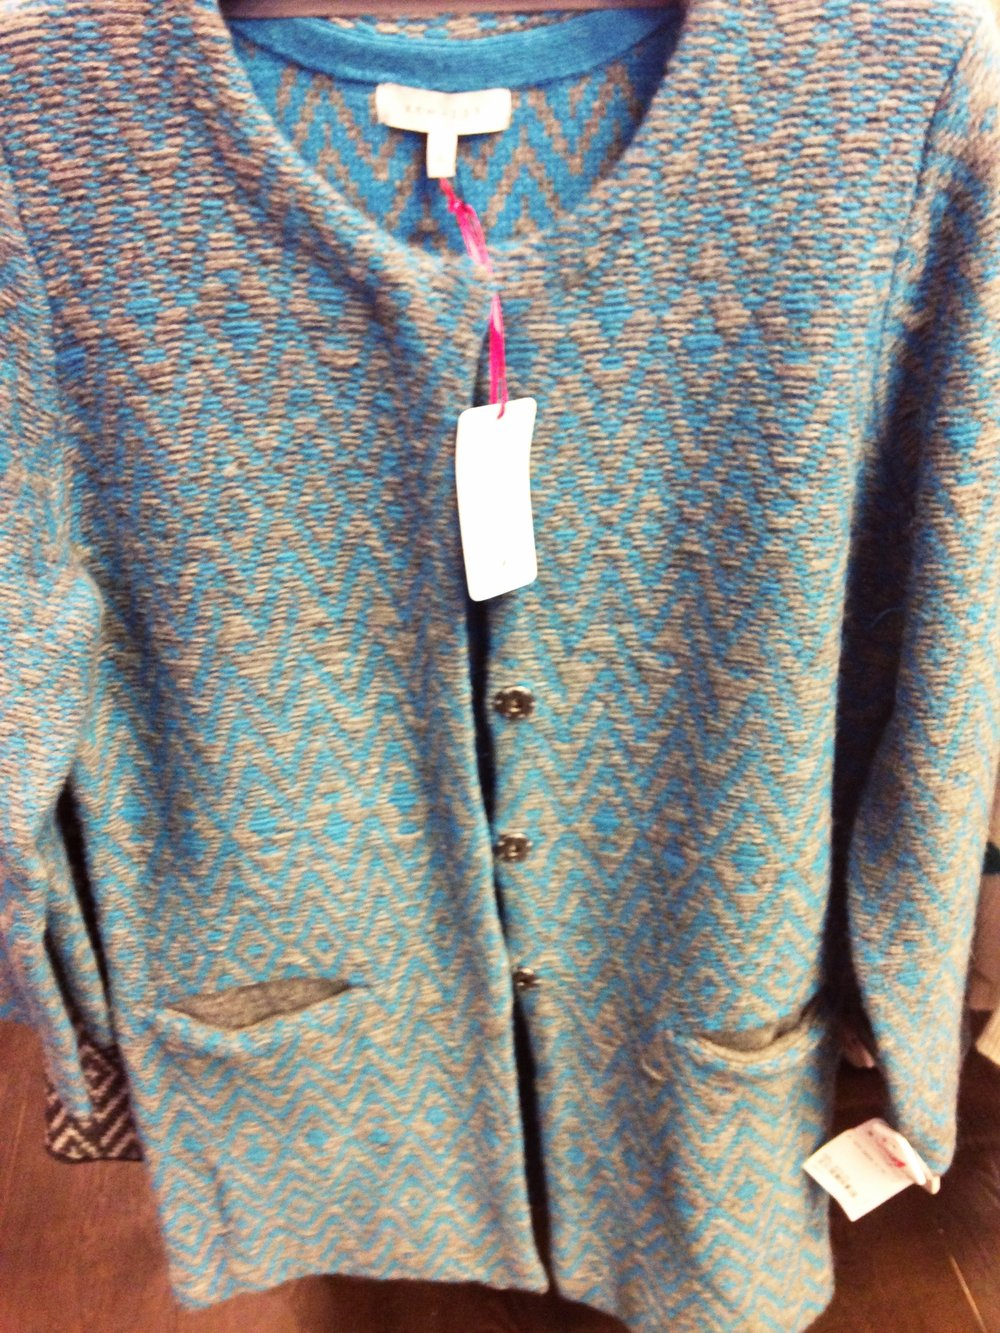 TK Maxx! Long line knitted jacket in blue and grey by Kew.159. Good value at €54.99